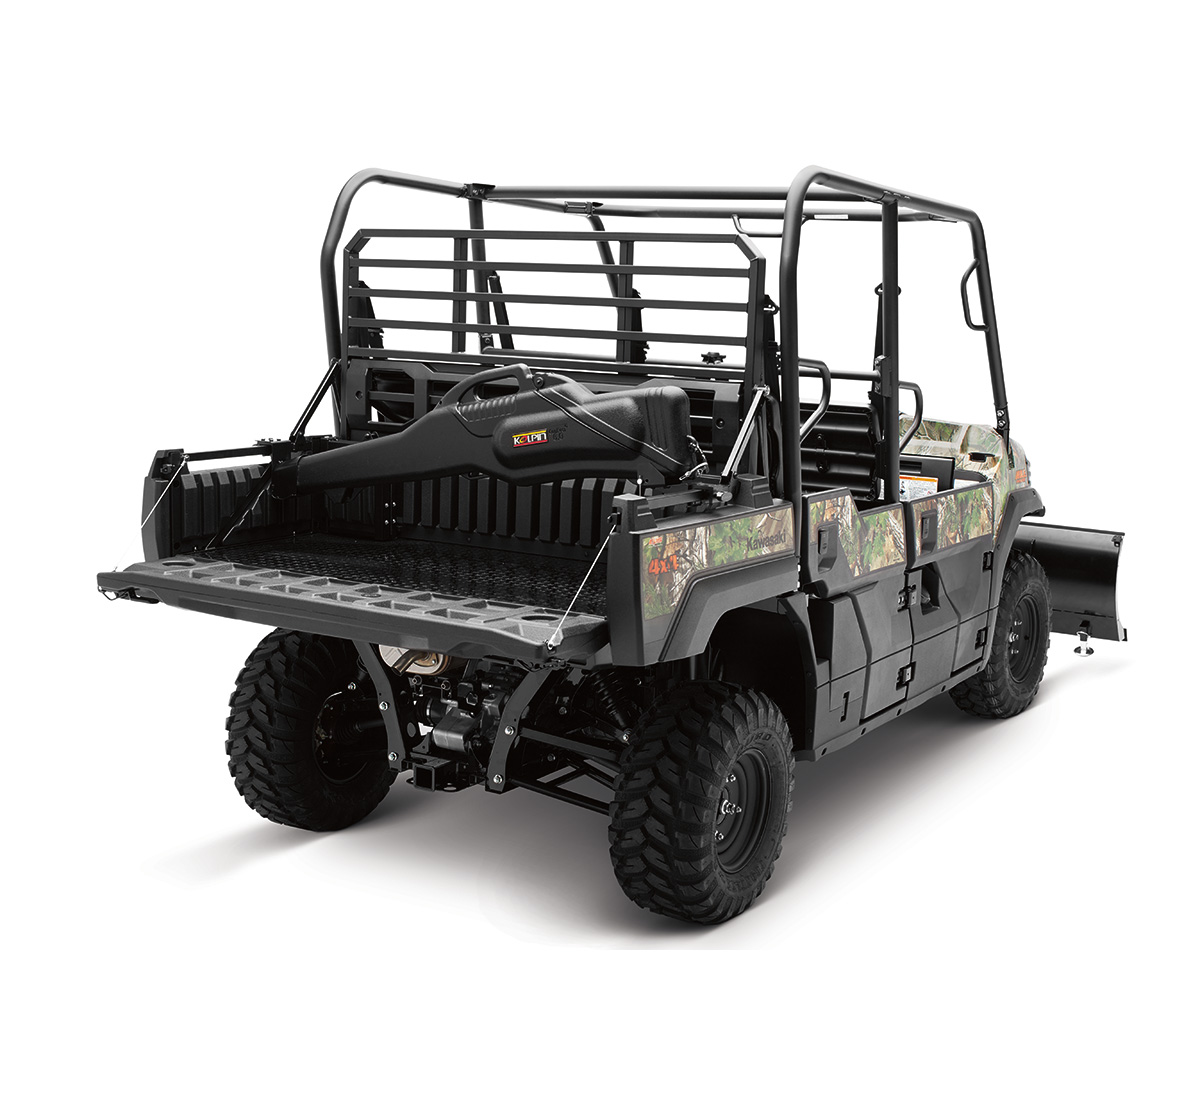 kawasaki mule pro fxt owners manual